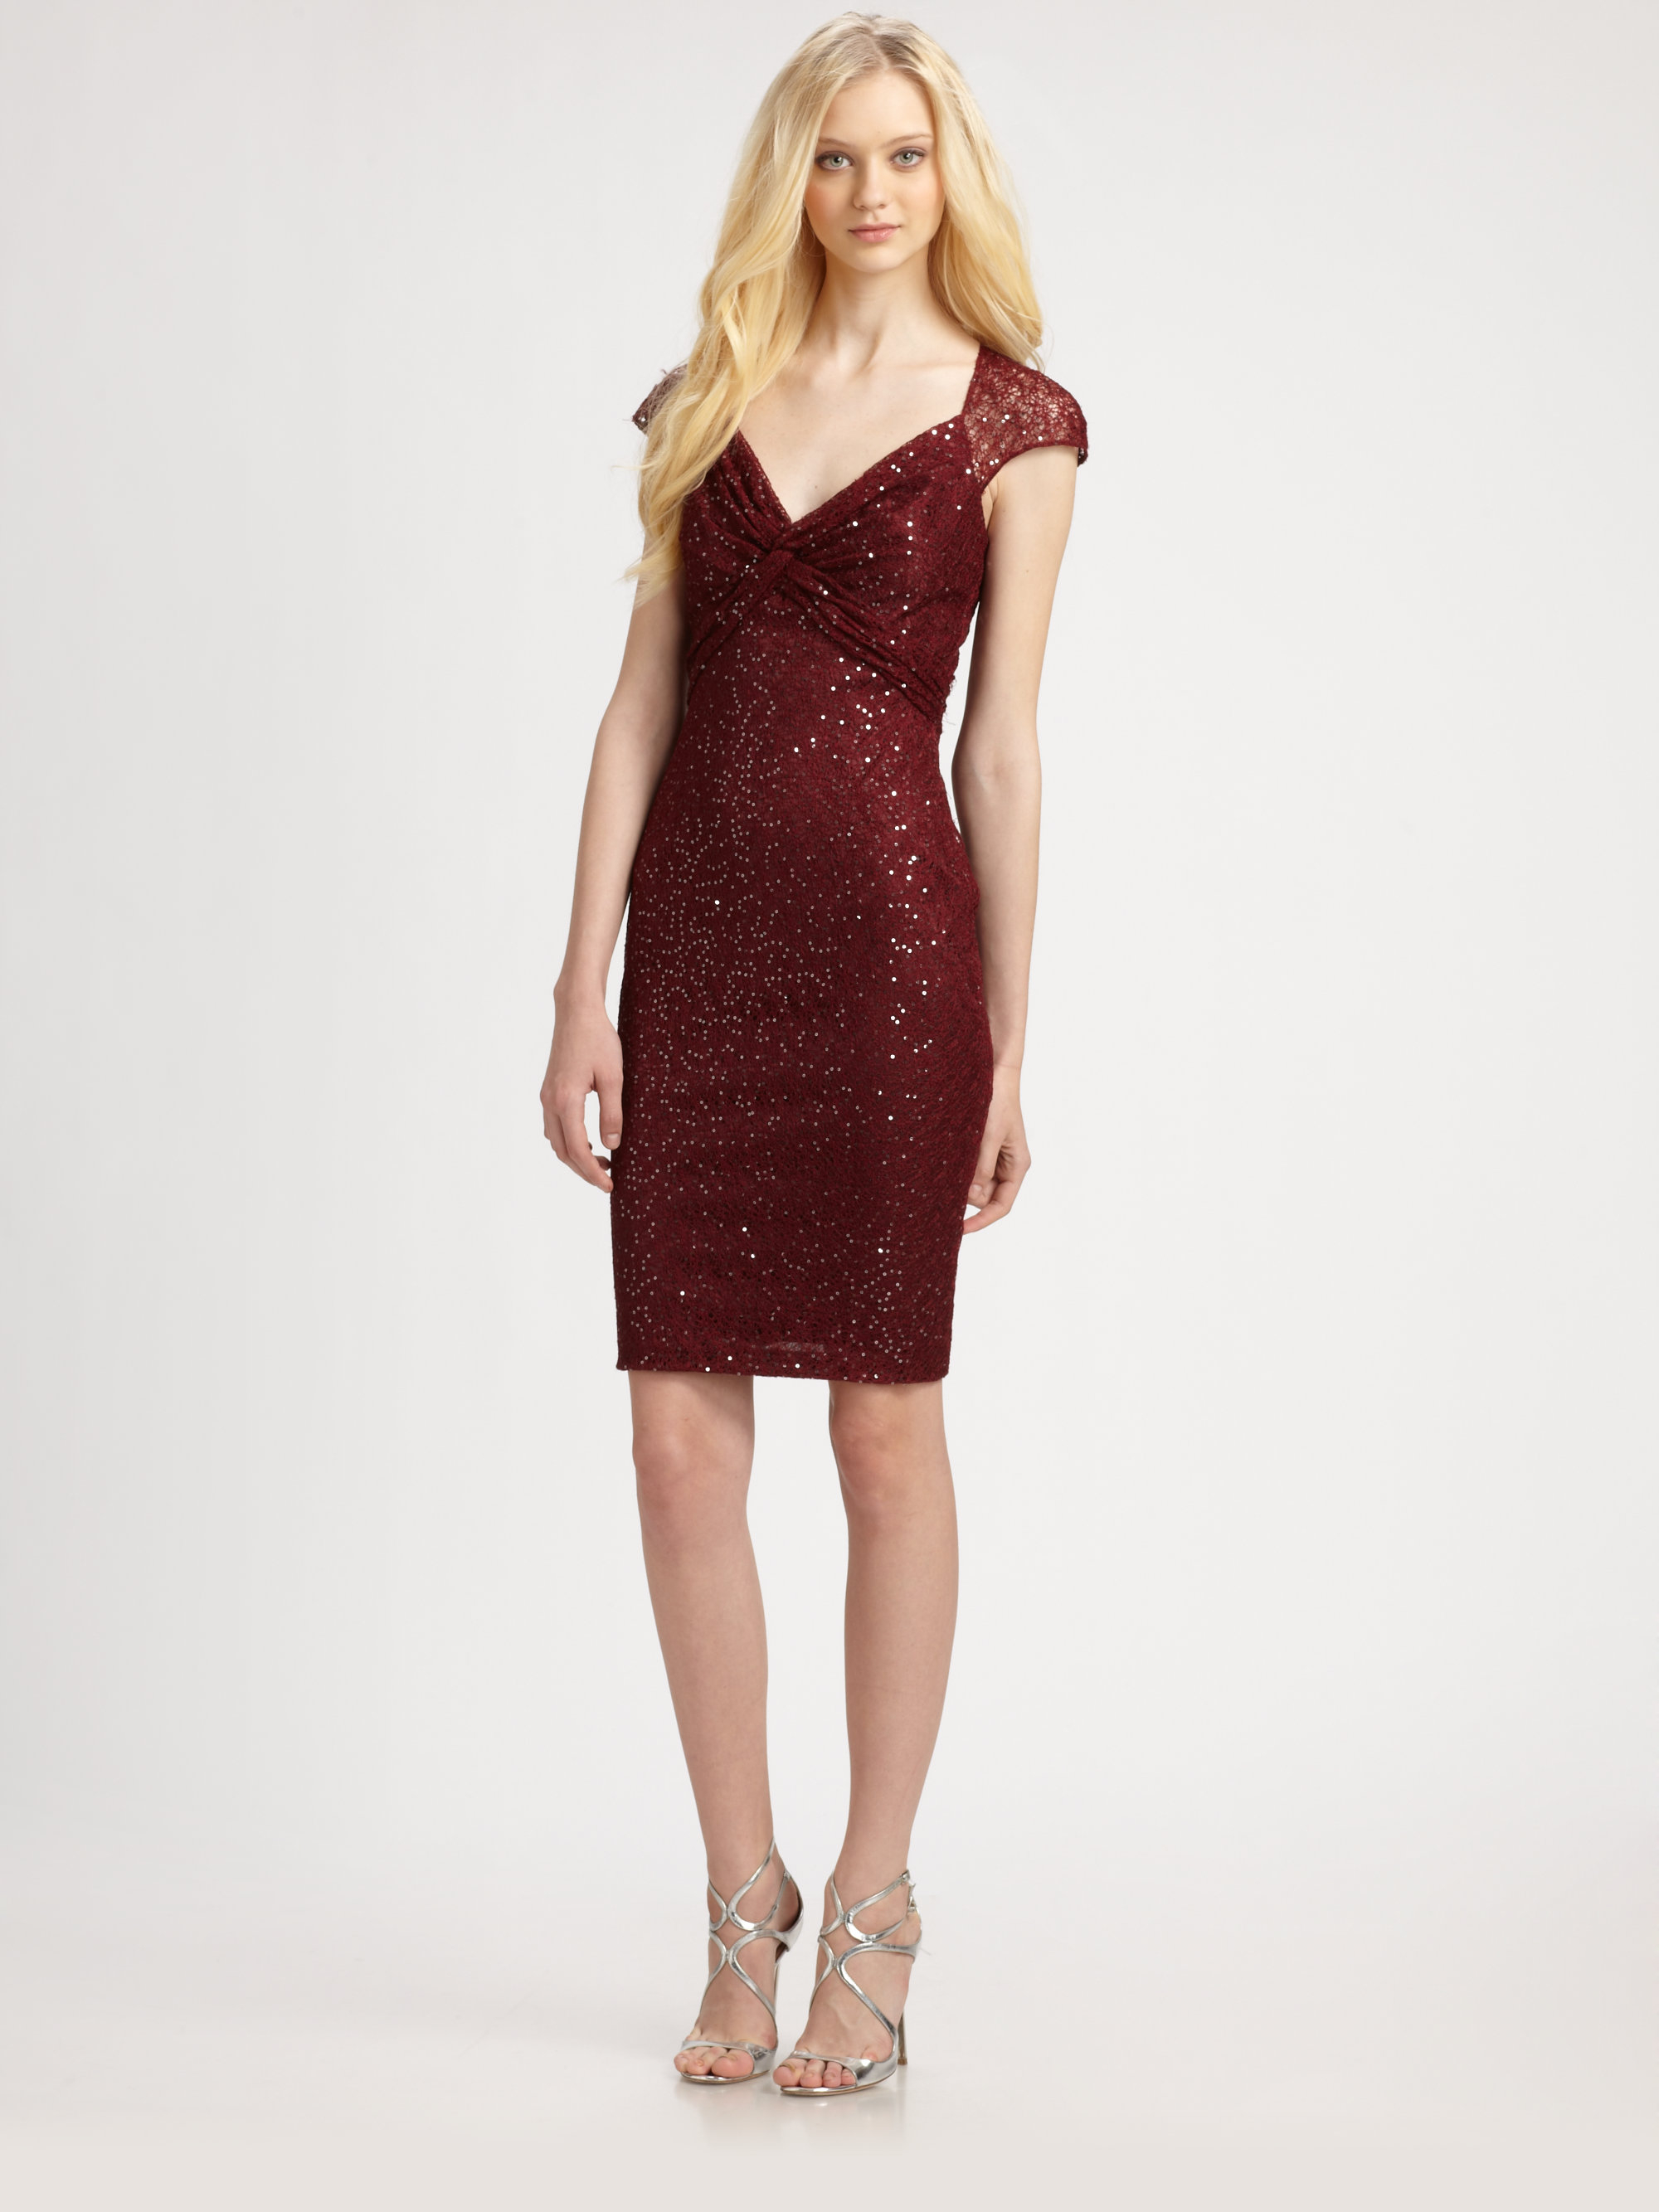 David Meister Sequin Lace Cap Sleeve Cocktail Dress In